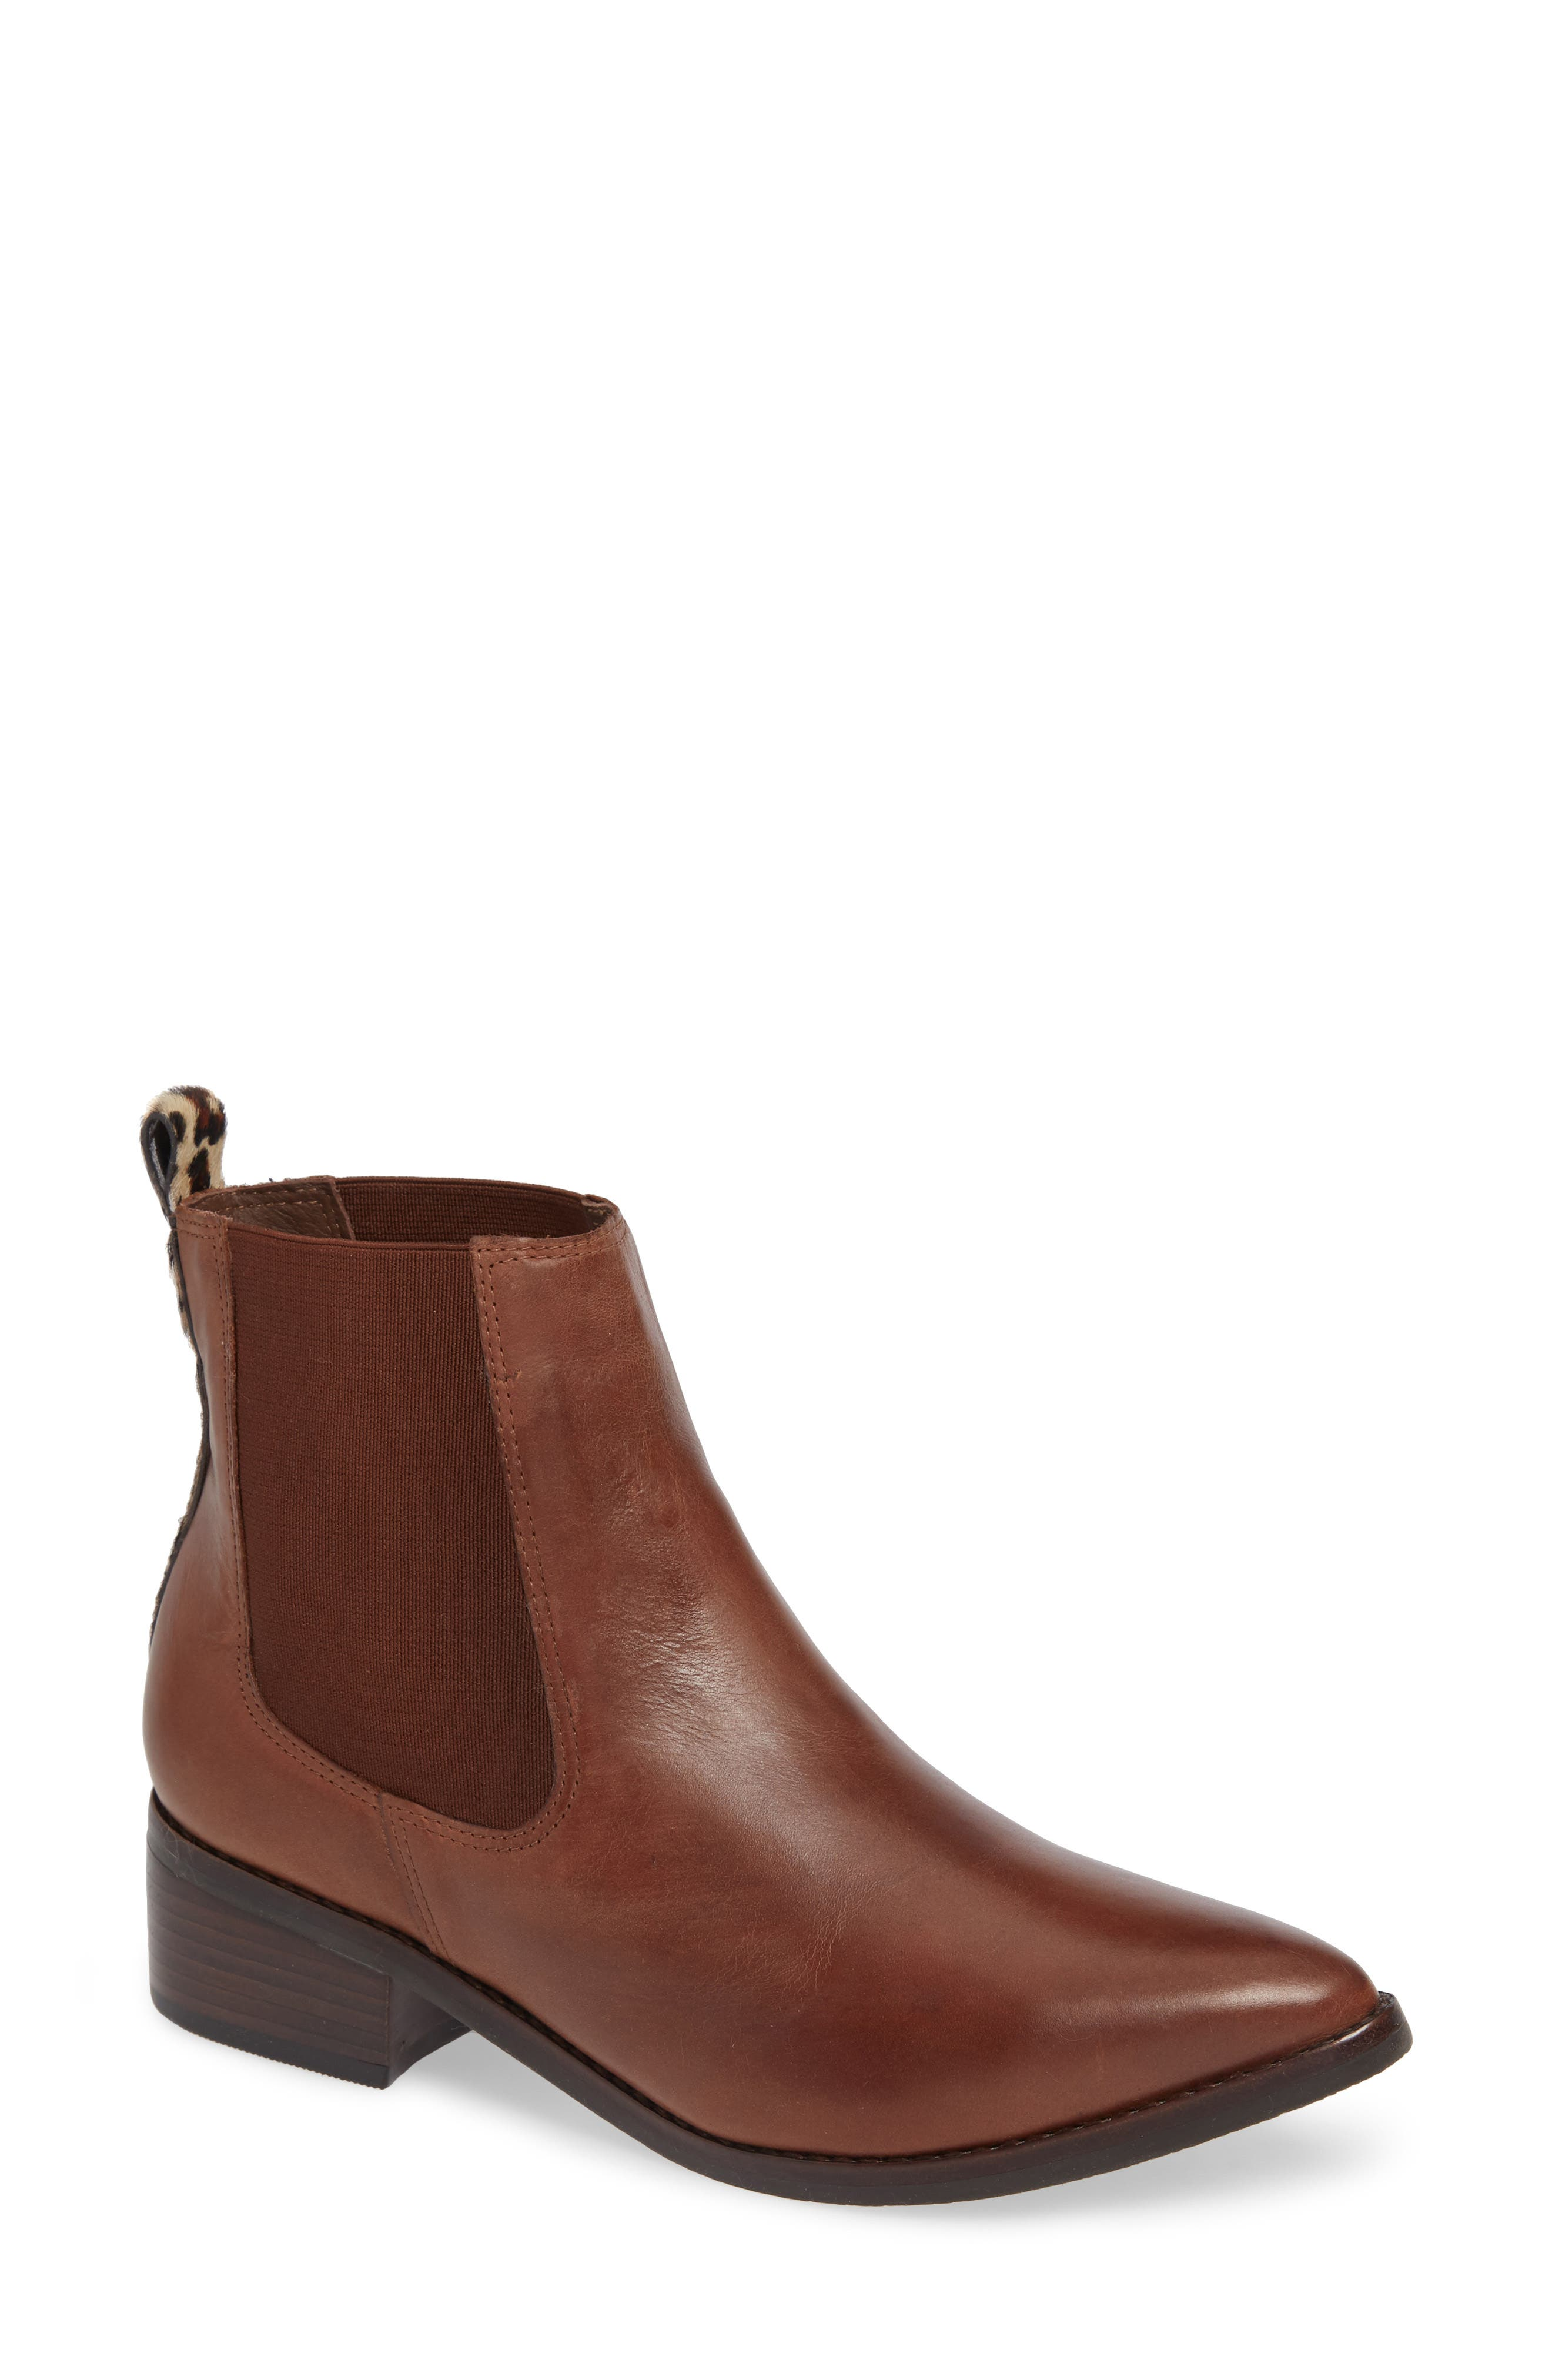 MATISSE Moscow Chelsea Boot in Saddle Leather